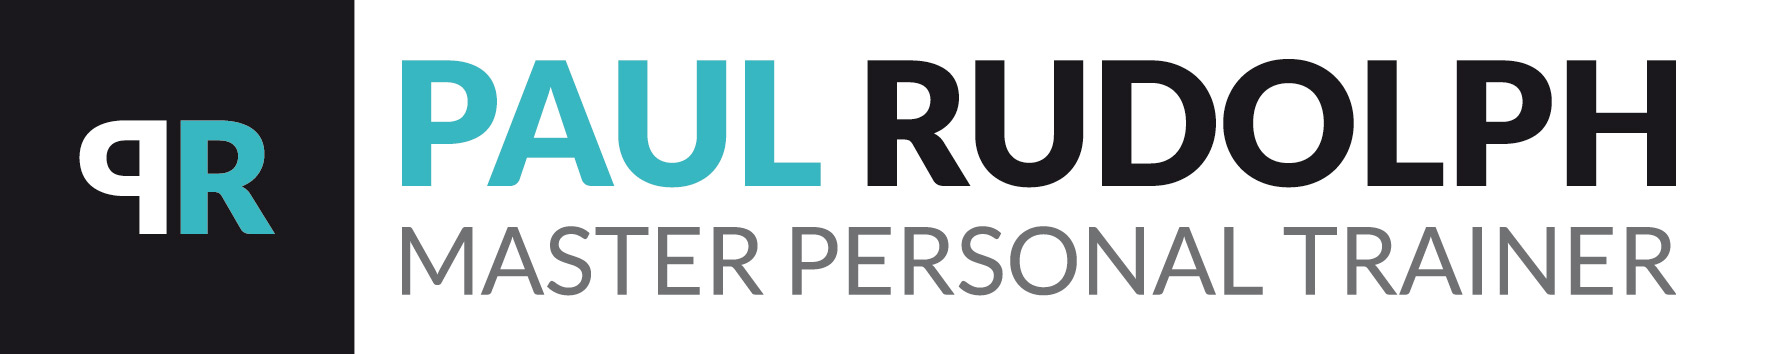 Partner Paul Rudolph - Master Personal Trainer